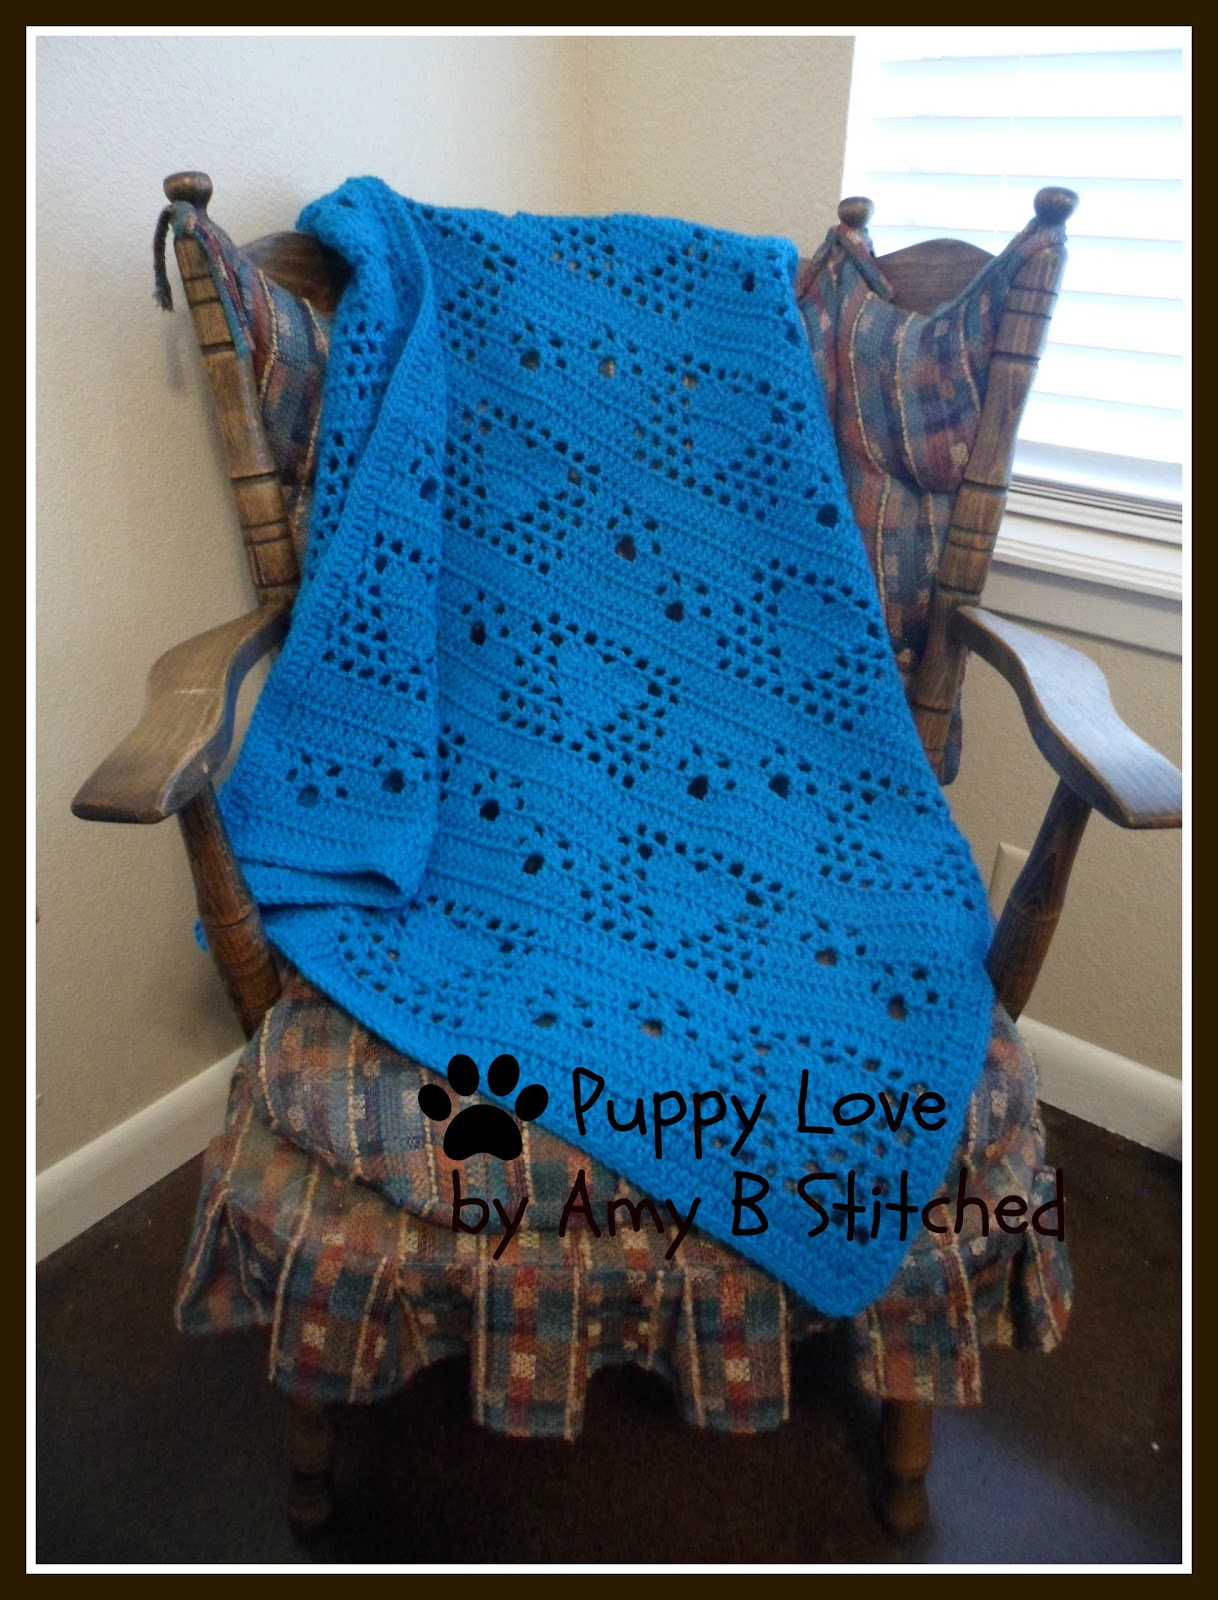 A Stitch At A Time for Amy B Stitched: PUPPY LOVE Crochet Afghan ...